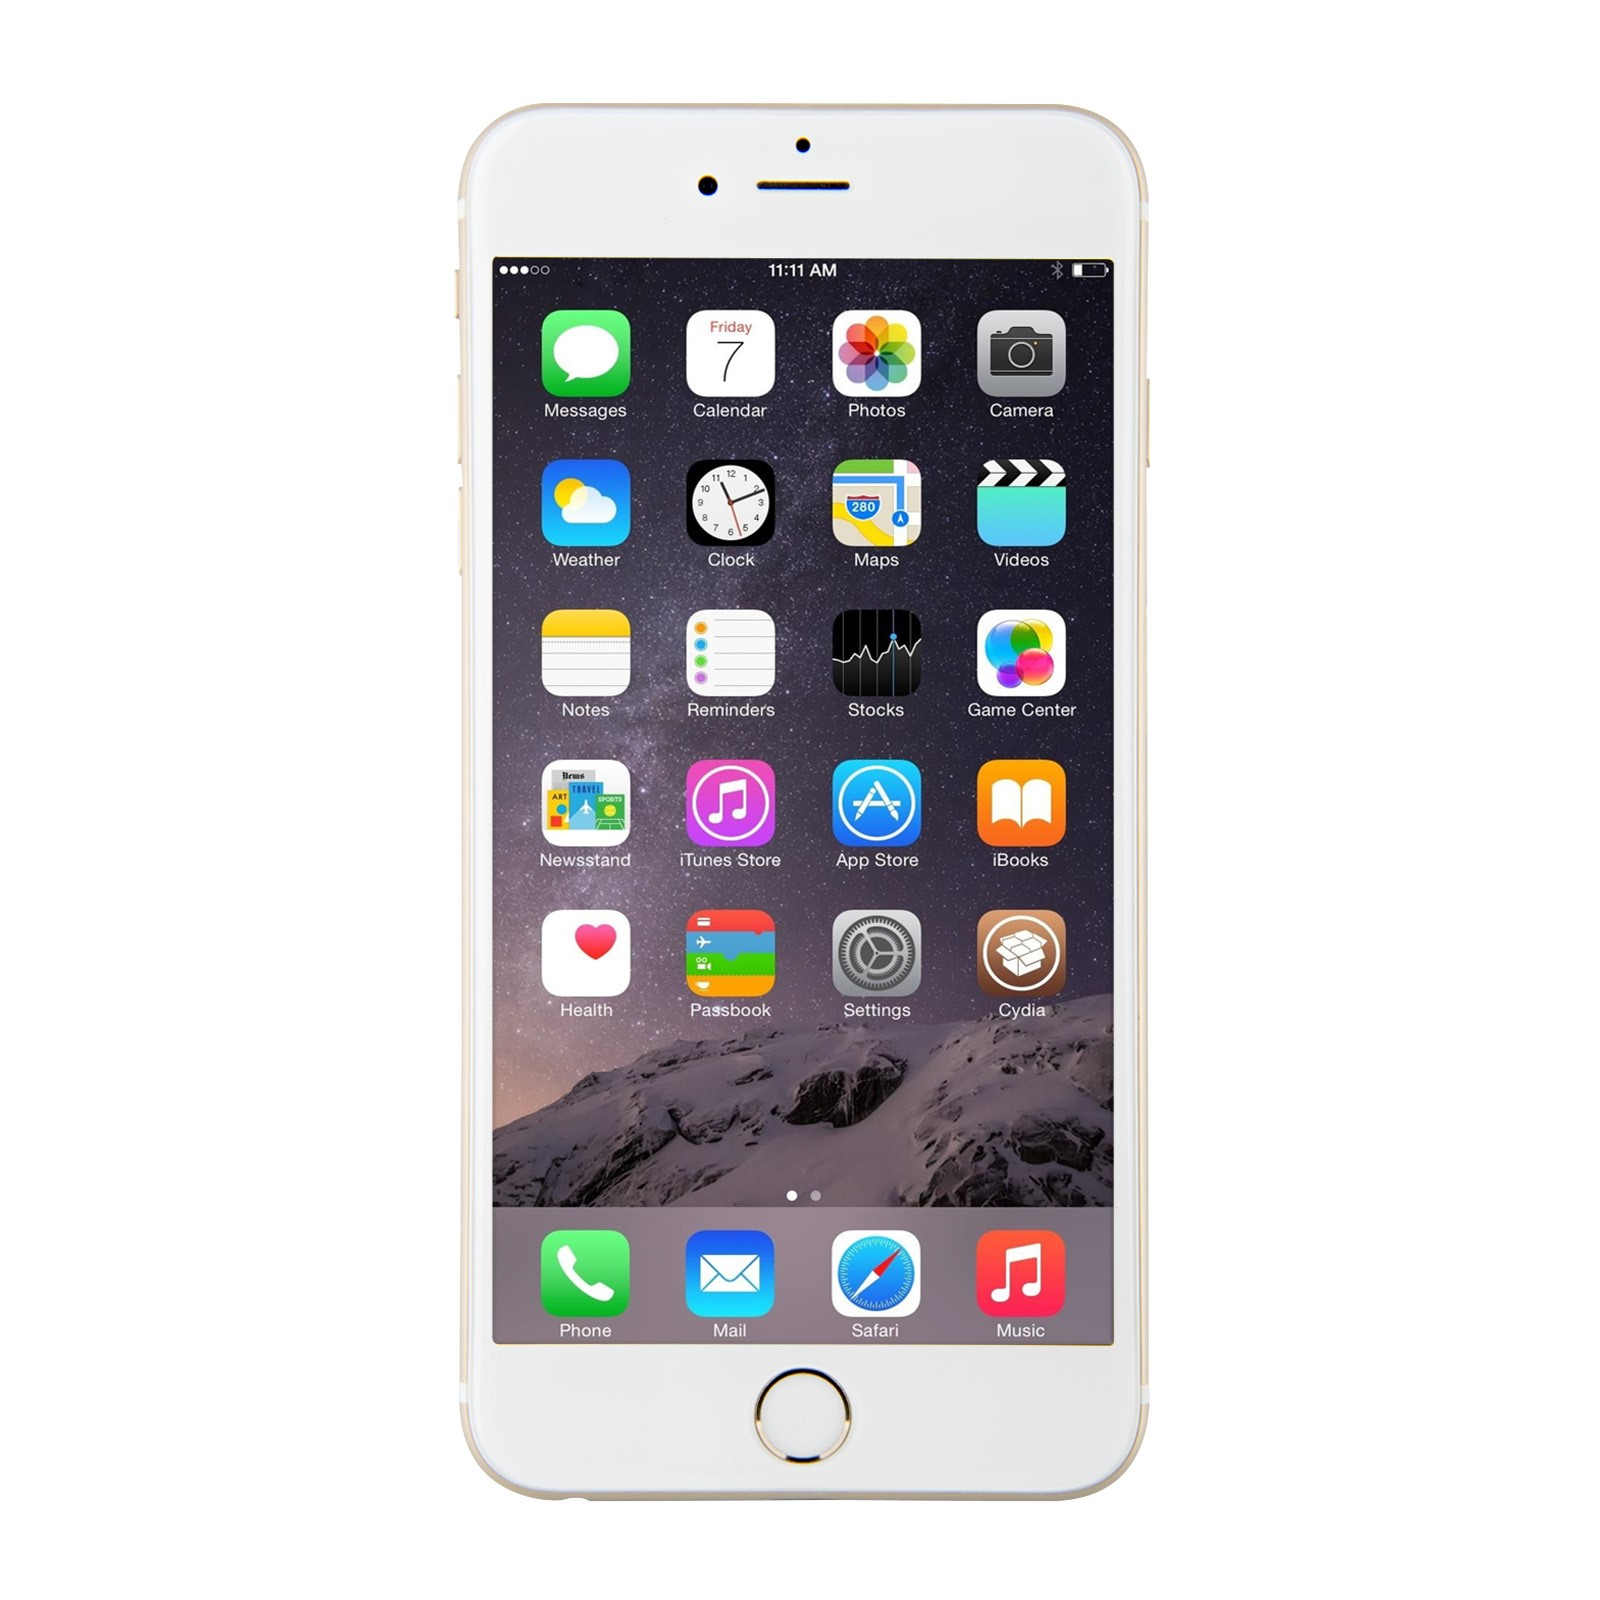 apple iphone 6 plus gsm factory unlocked 4g lte 8mp camera smartphone ebay. Black Bedroom Furniture Sets. Home Design Ideas